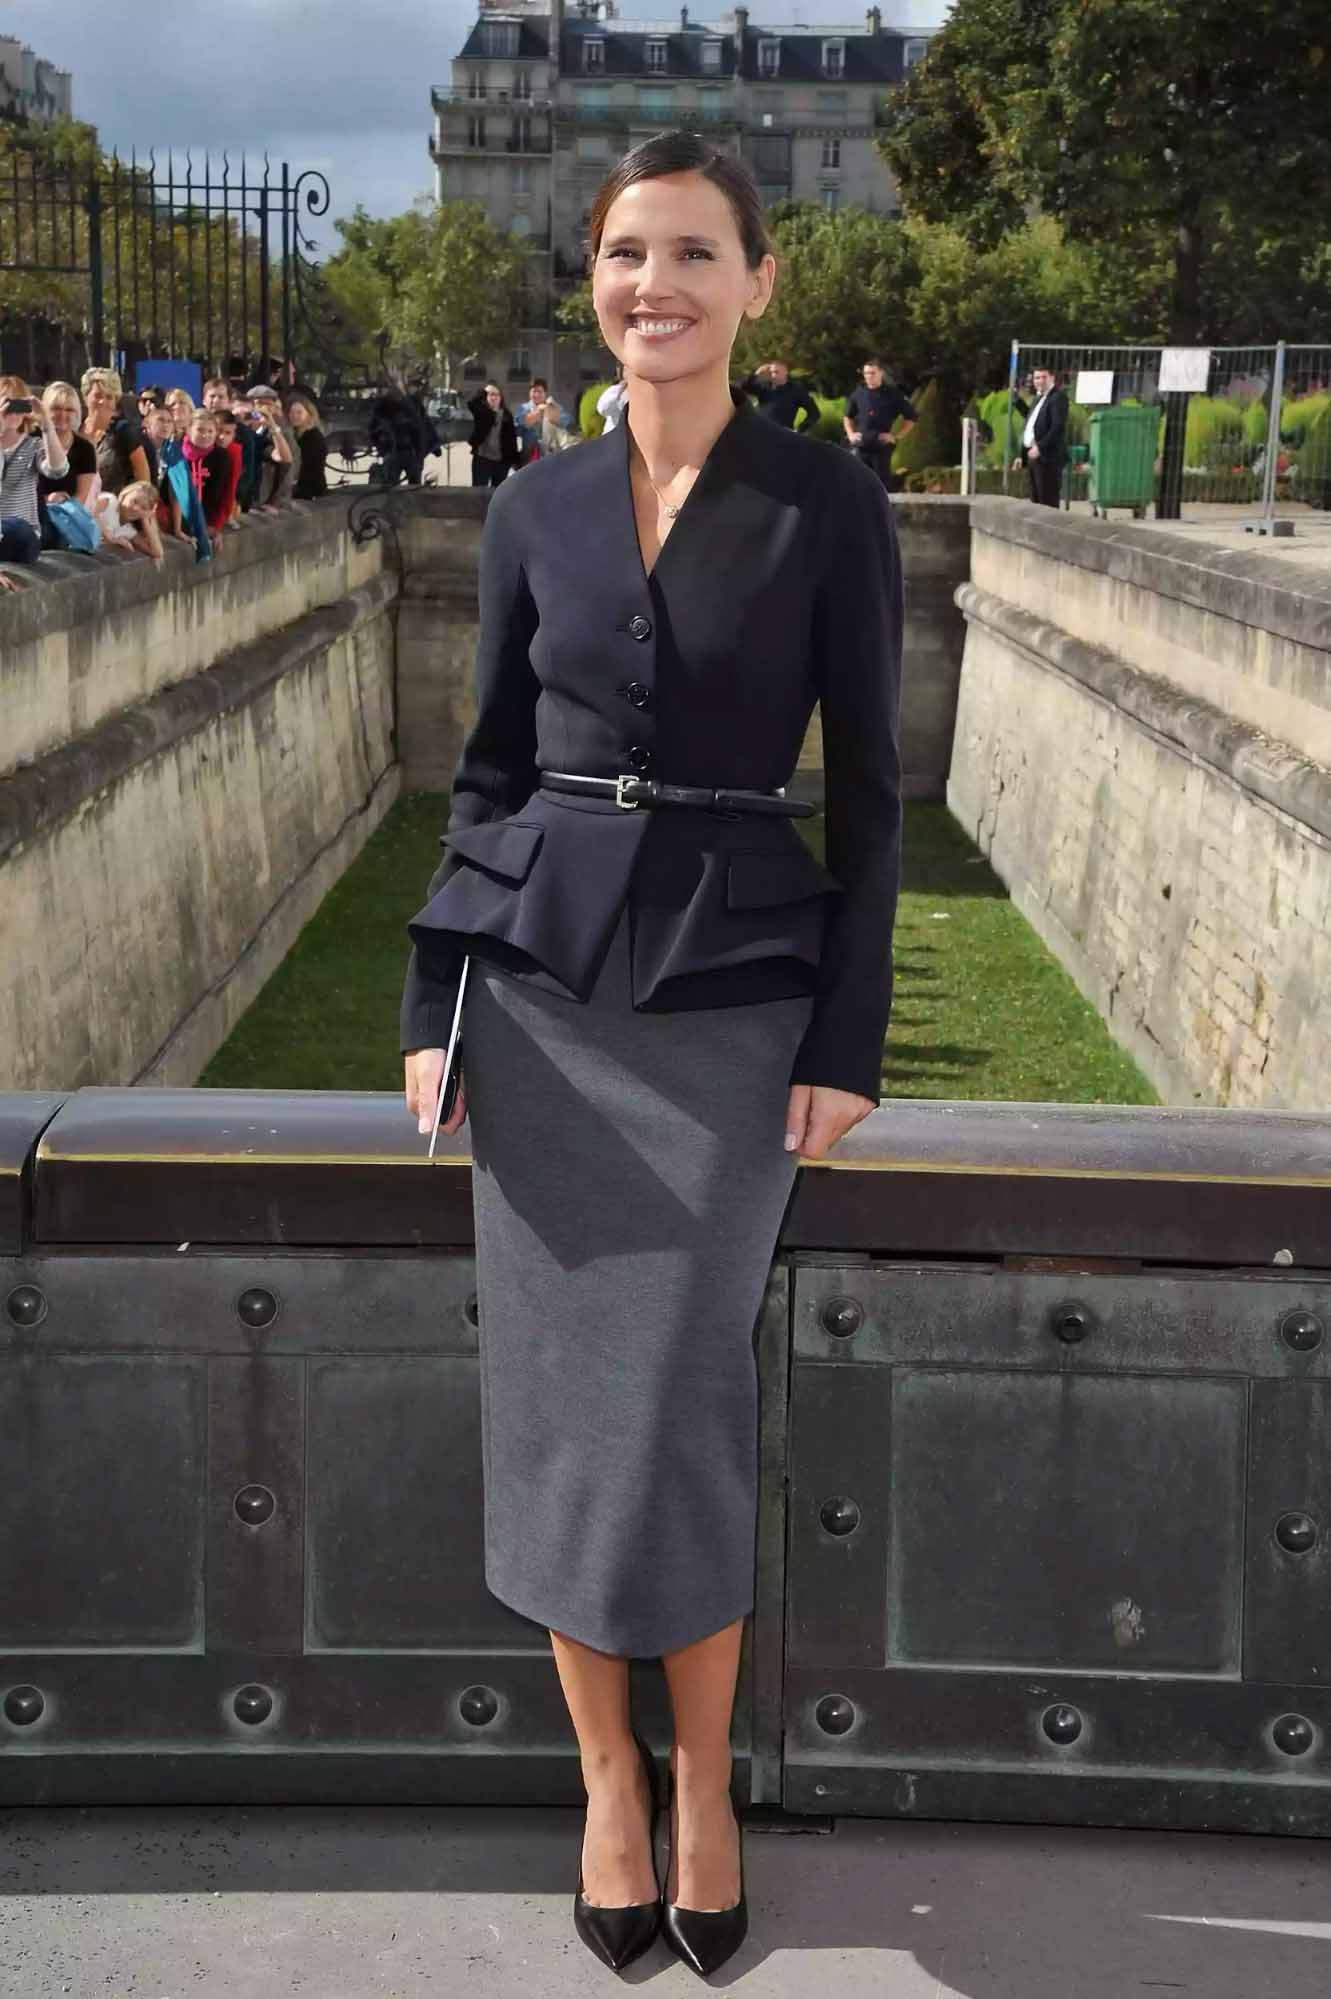 Virginie Ledoyen wears a pencil skirt to the Christian Dior fashion show. Pascal Le Segretain/Getty Images